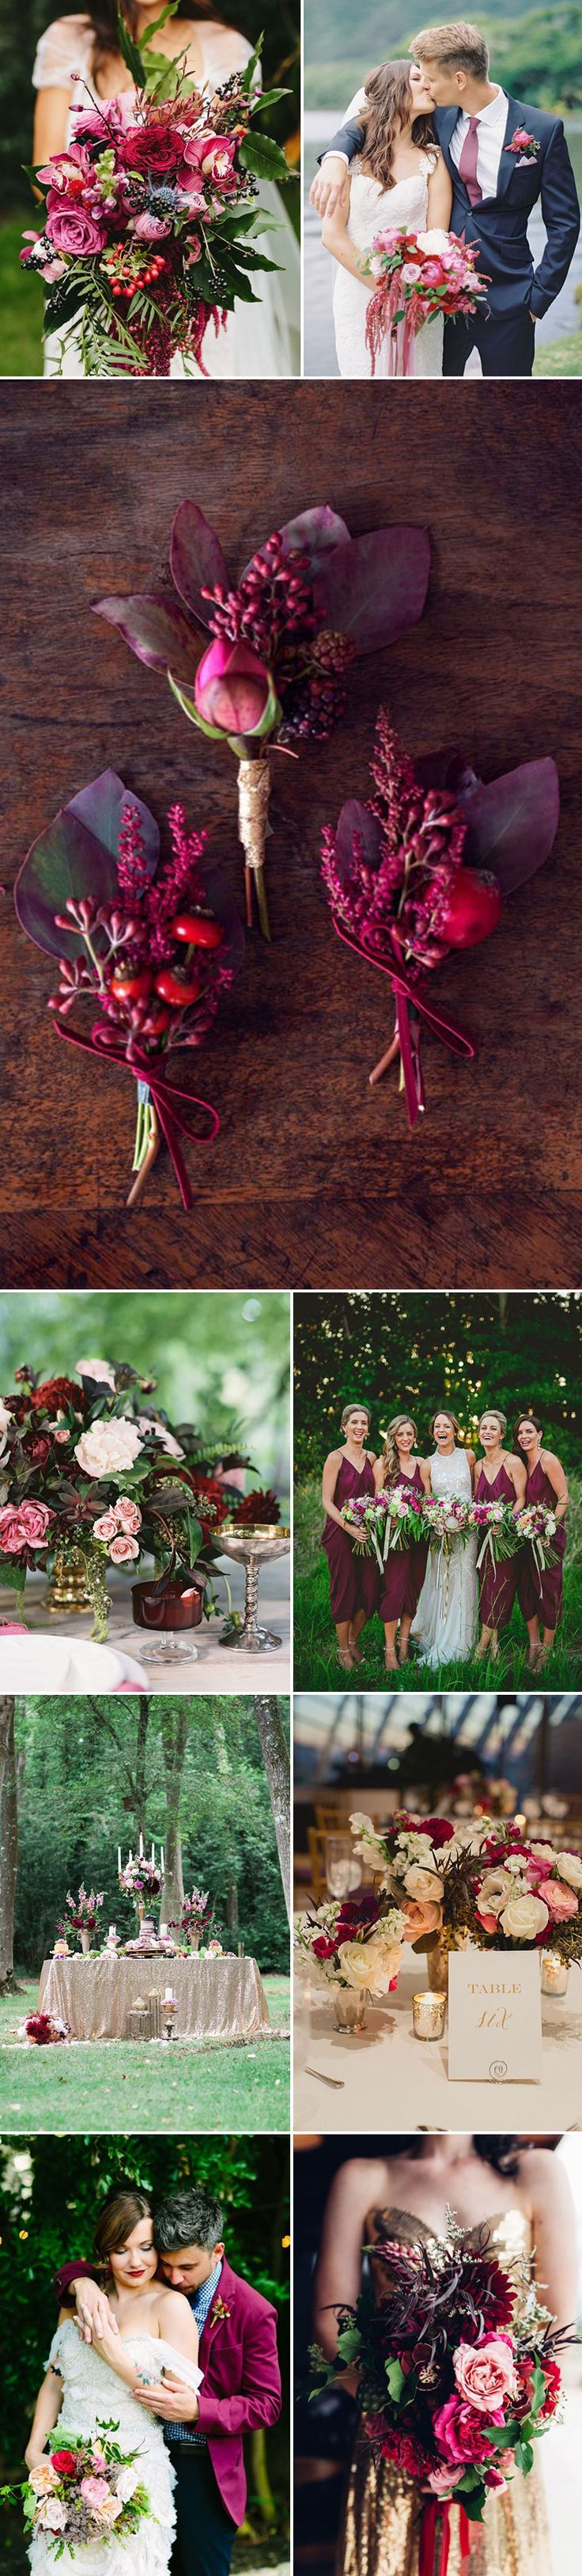 Berry is a striking, artful hue that makes a divine wedding color option. Make your wedding fabulously glamorous by pairing rich berries with elegant golds and dramatic navy blues. This versatile color has beautiful tonal ranges that works for all seasons